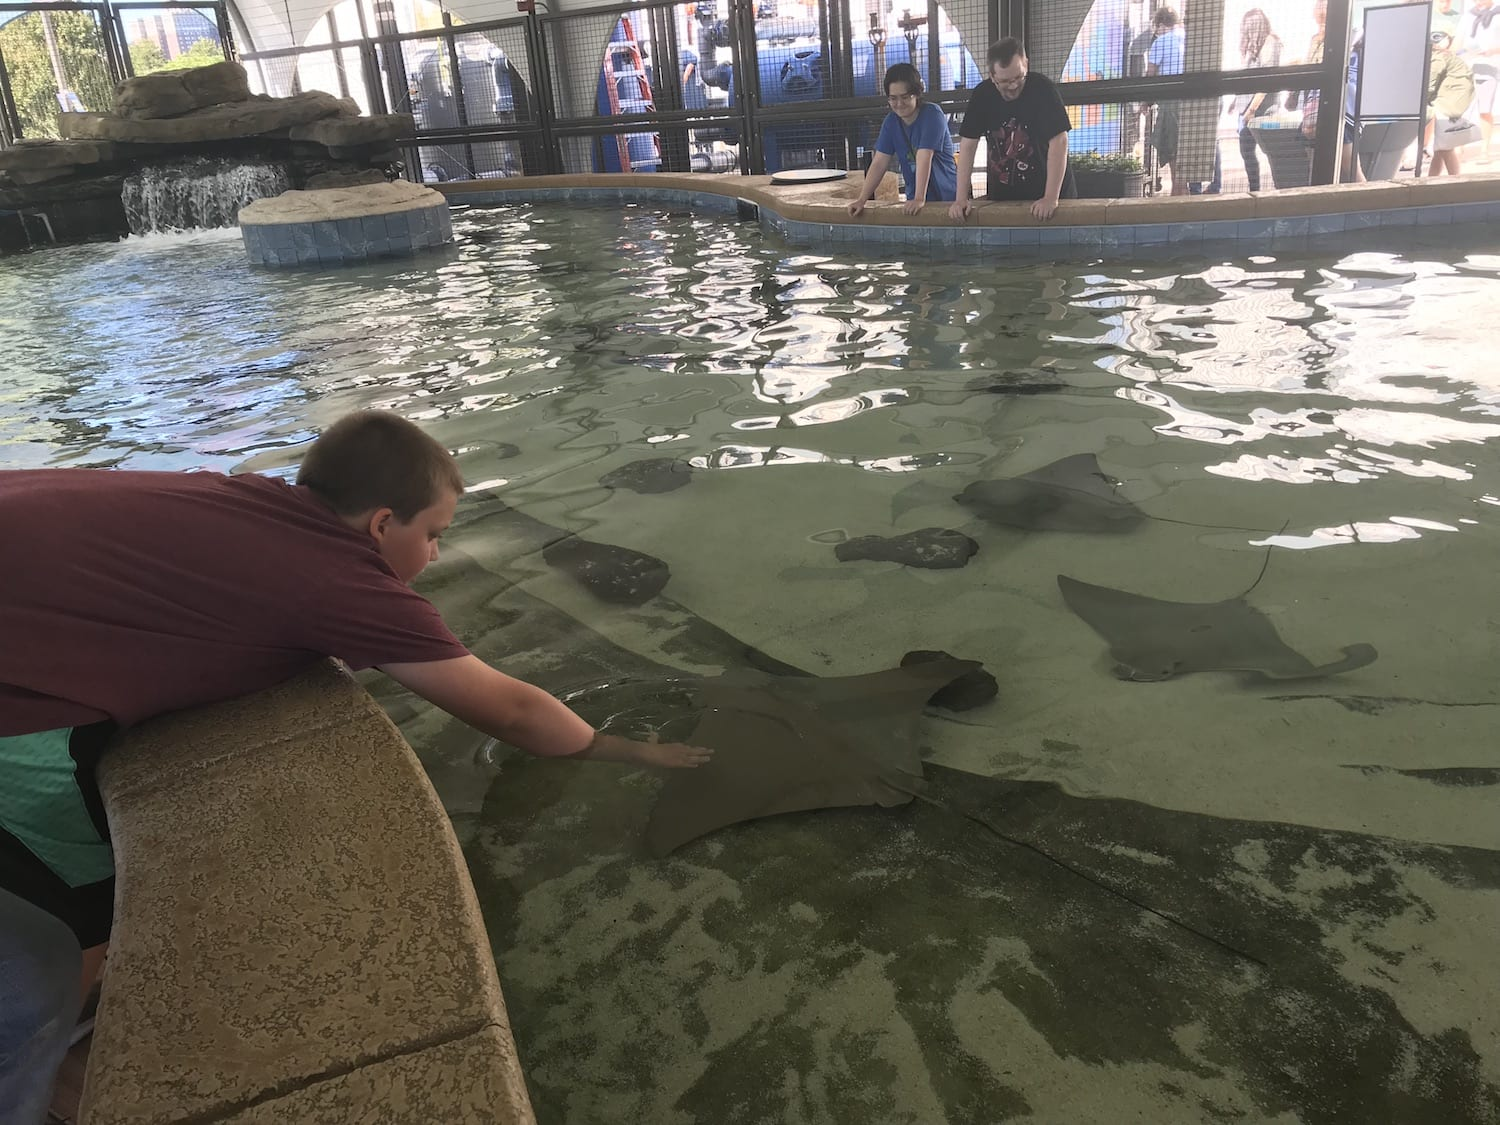 Things to Know about Shedd Aquarium